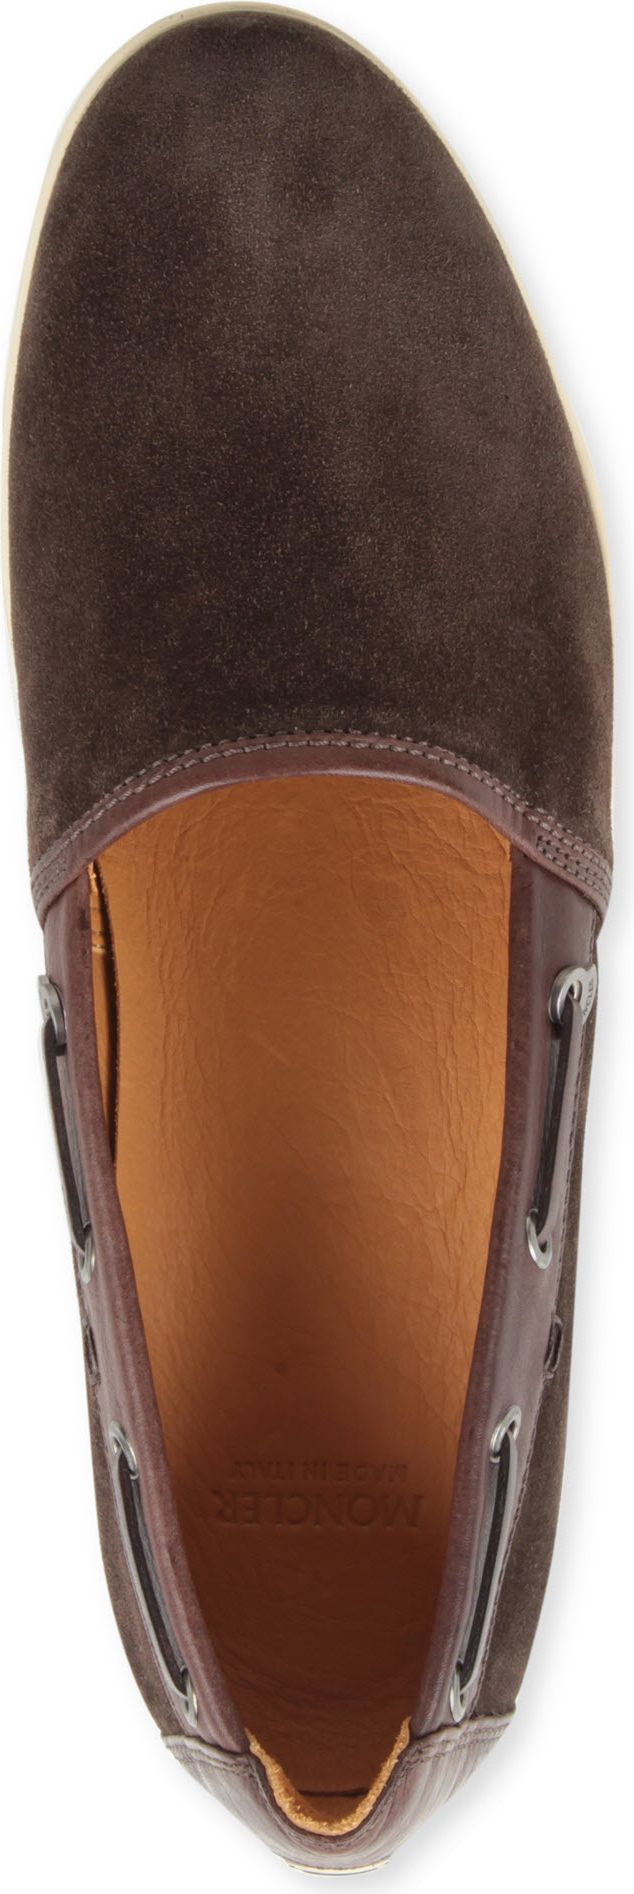 Moncler Martinique Suede Slipon Trainers in Brown for Men